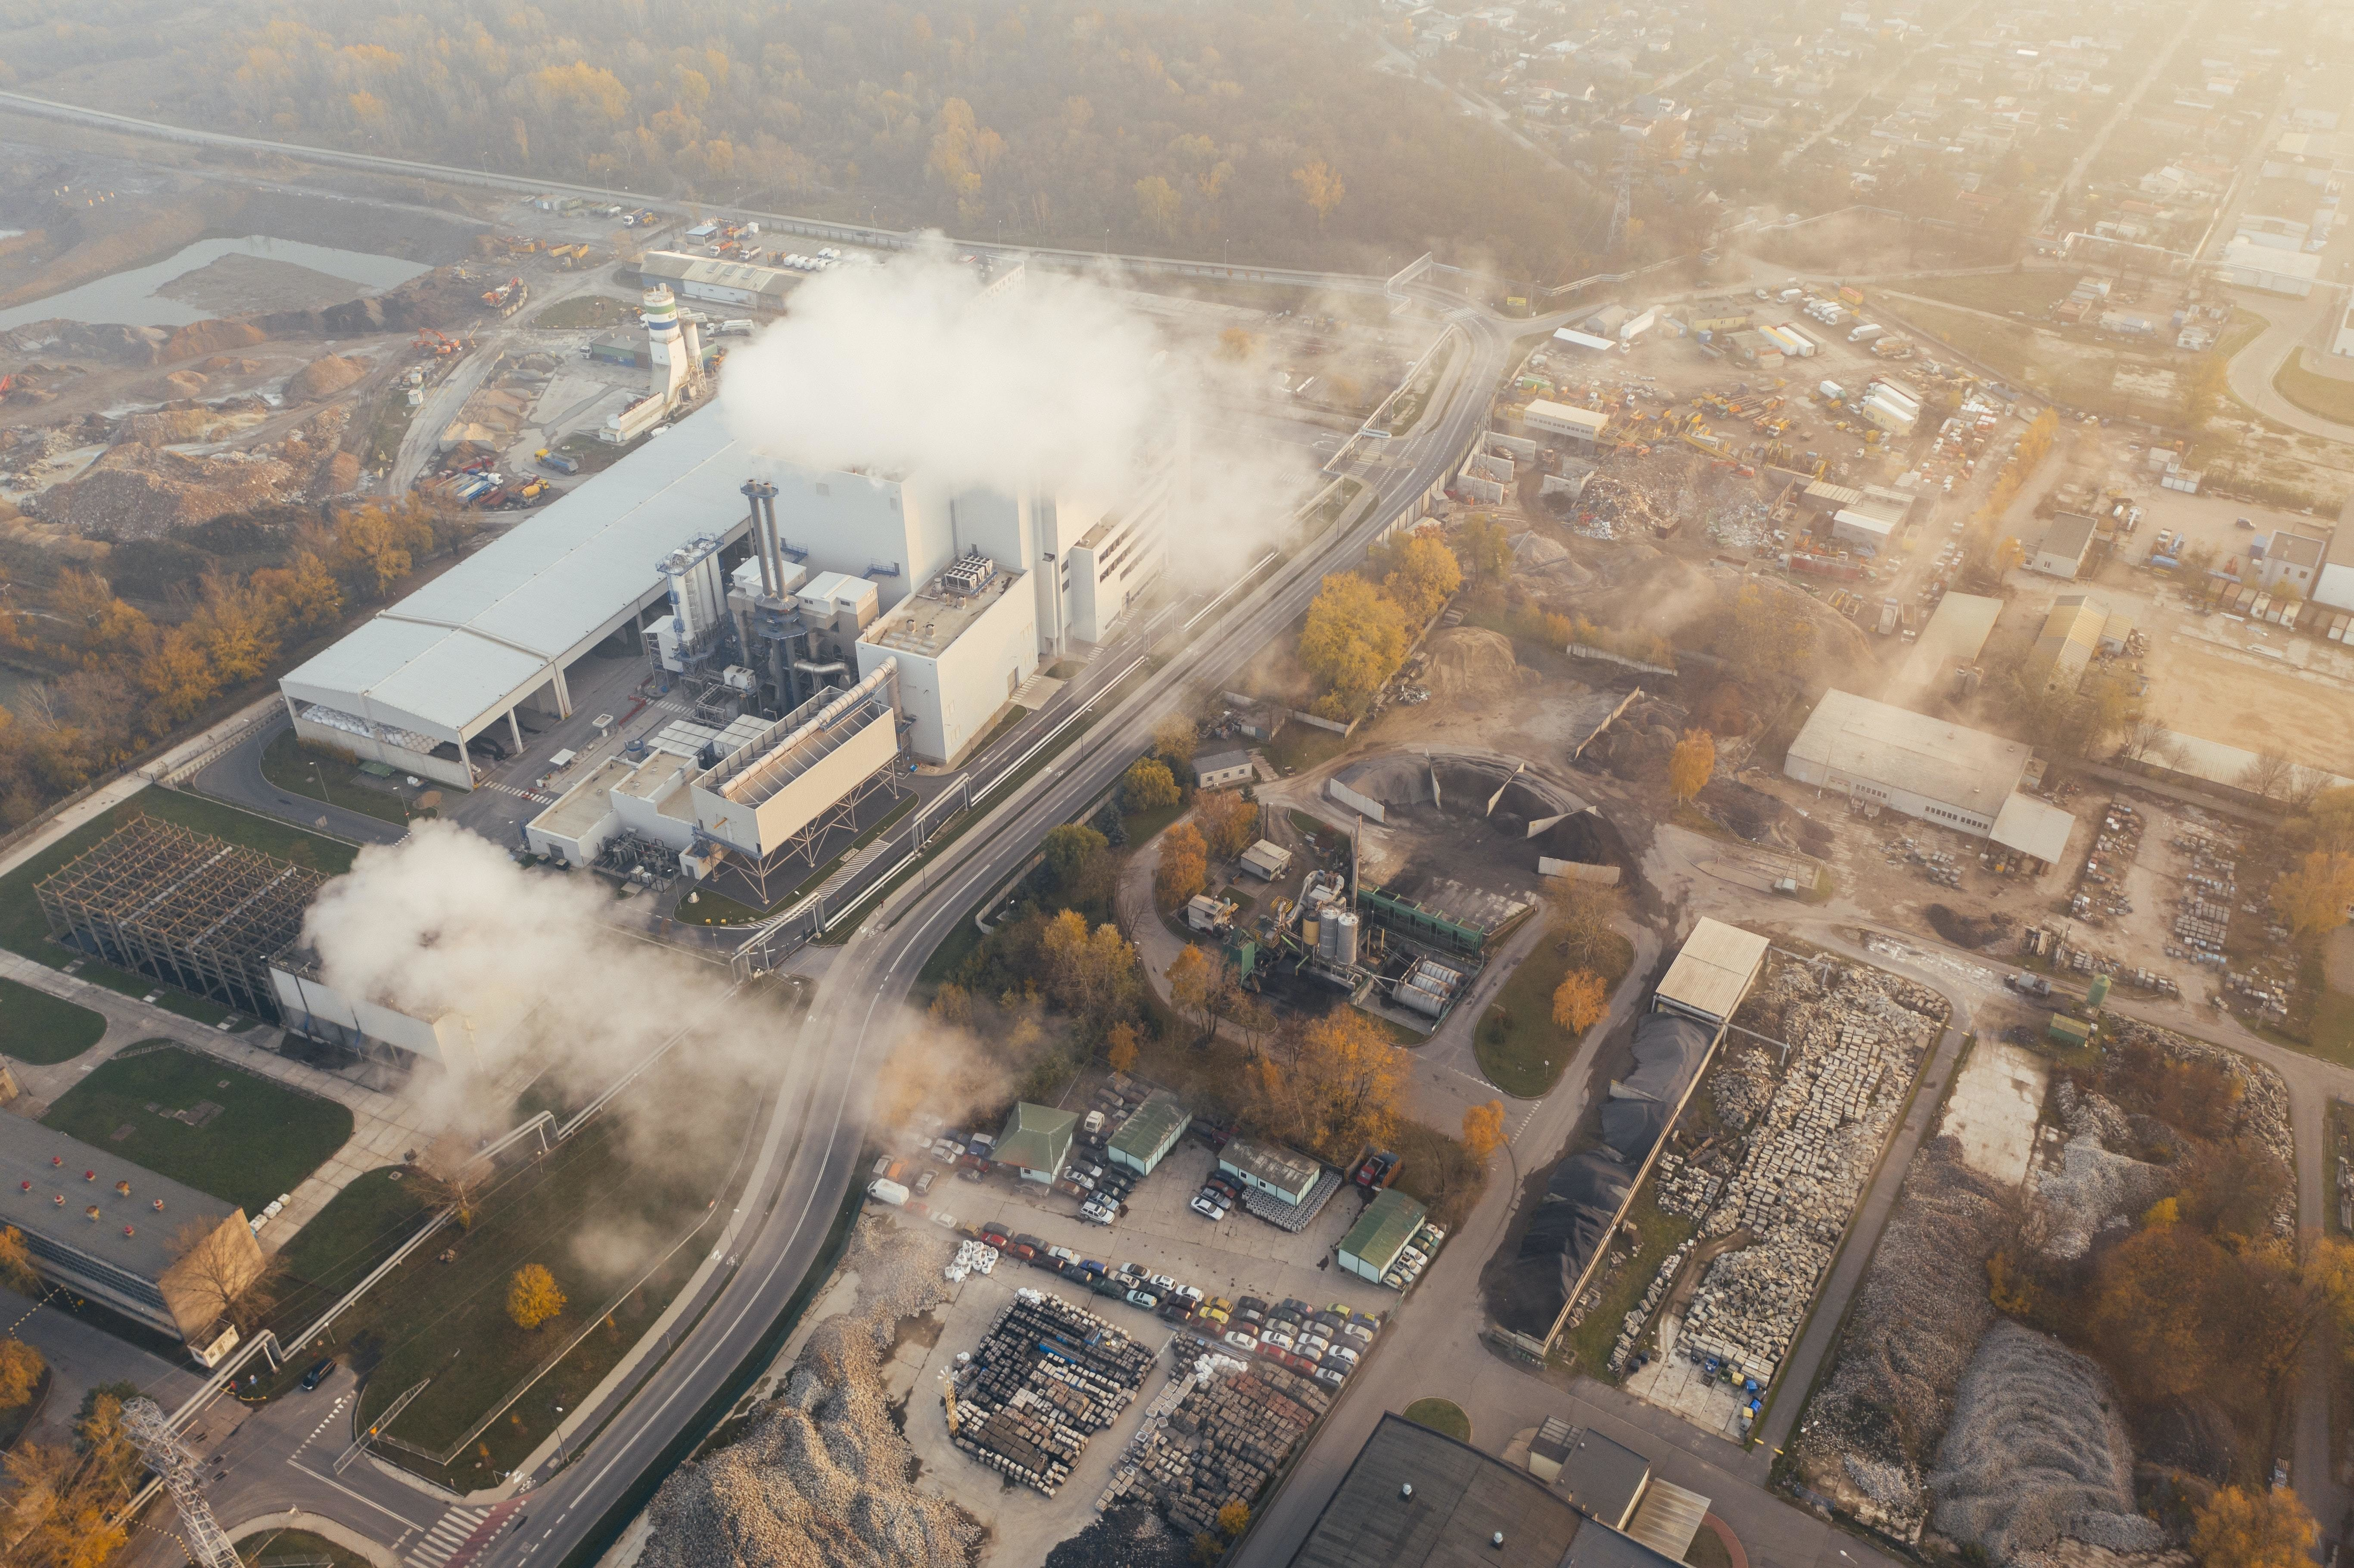 Emissions, such as the one coming from this factory, could be reduced and managed through carbon credits.